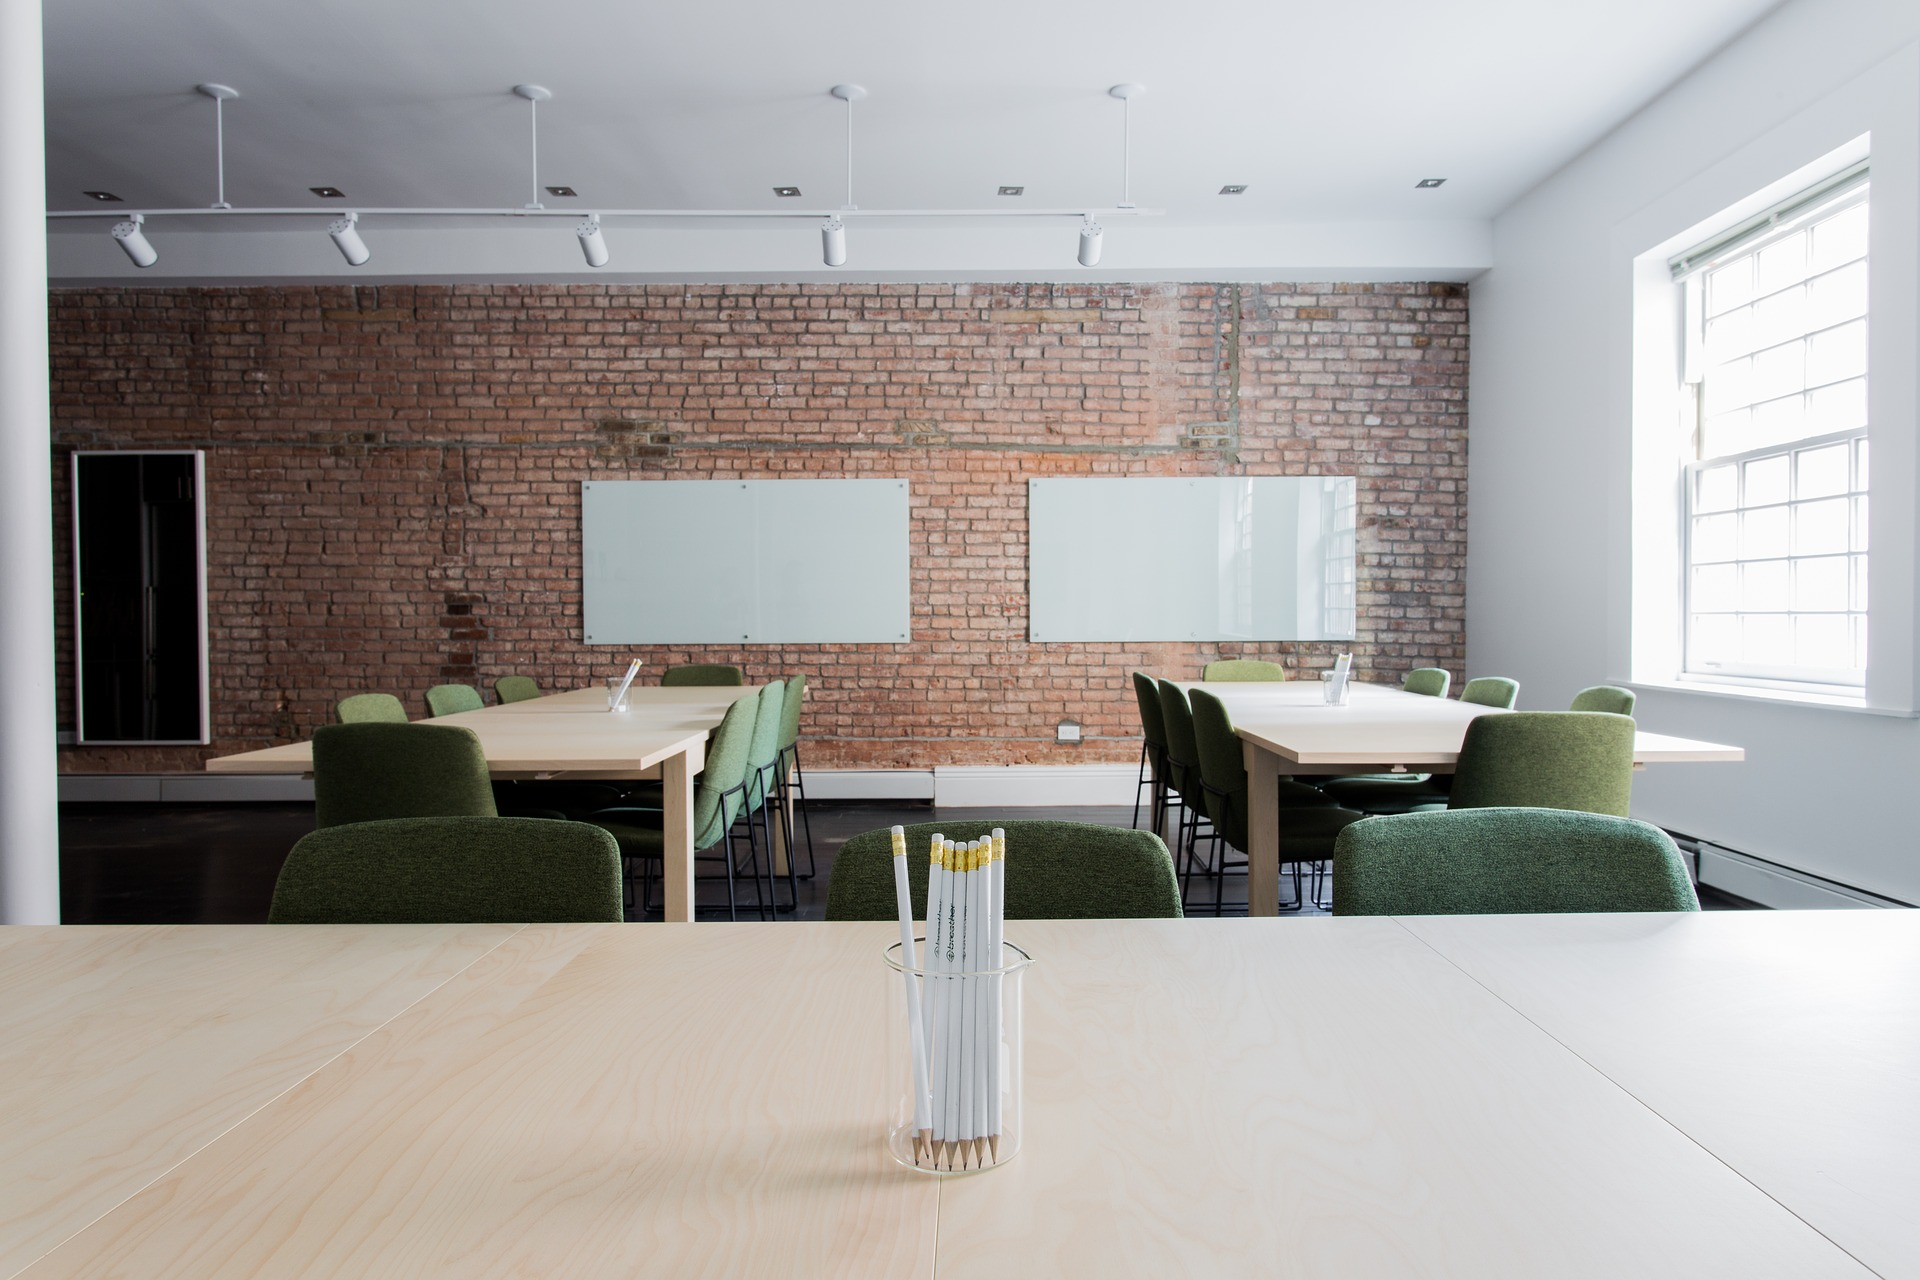 Interior of renovated classroom showing natural brick wall and large window for natural light.